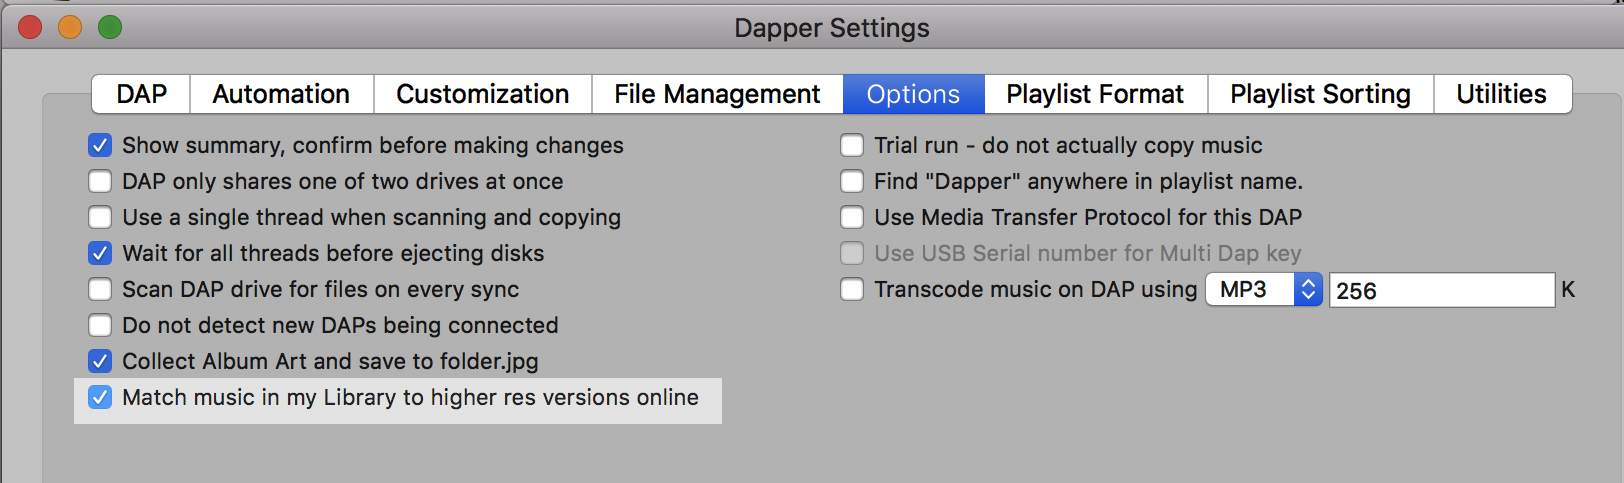 Dapper for Mac updates: App to sync iTunes with your DAP